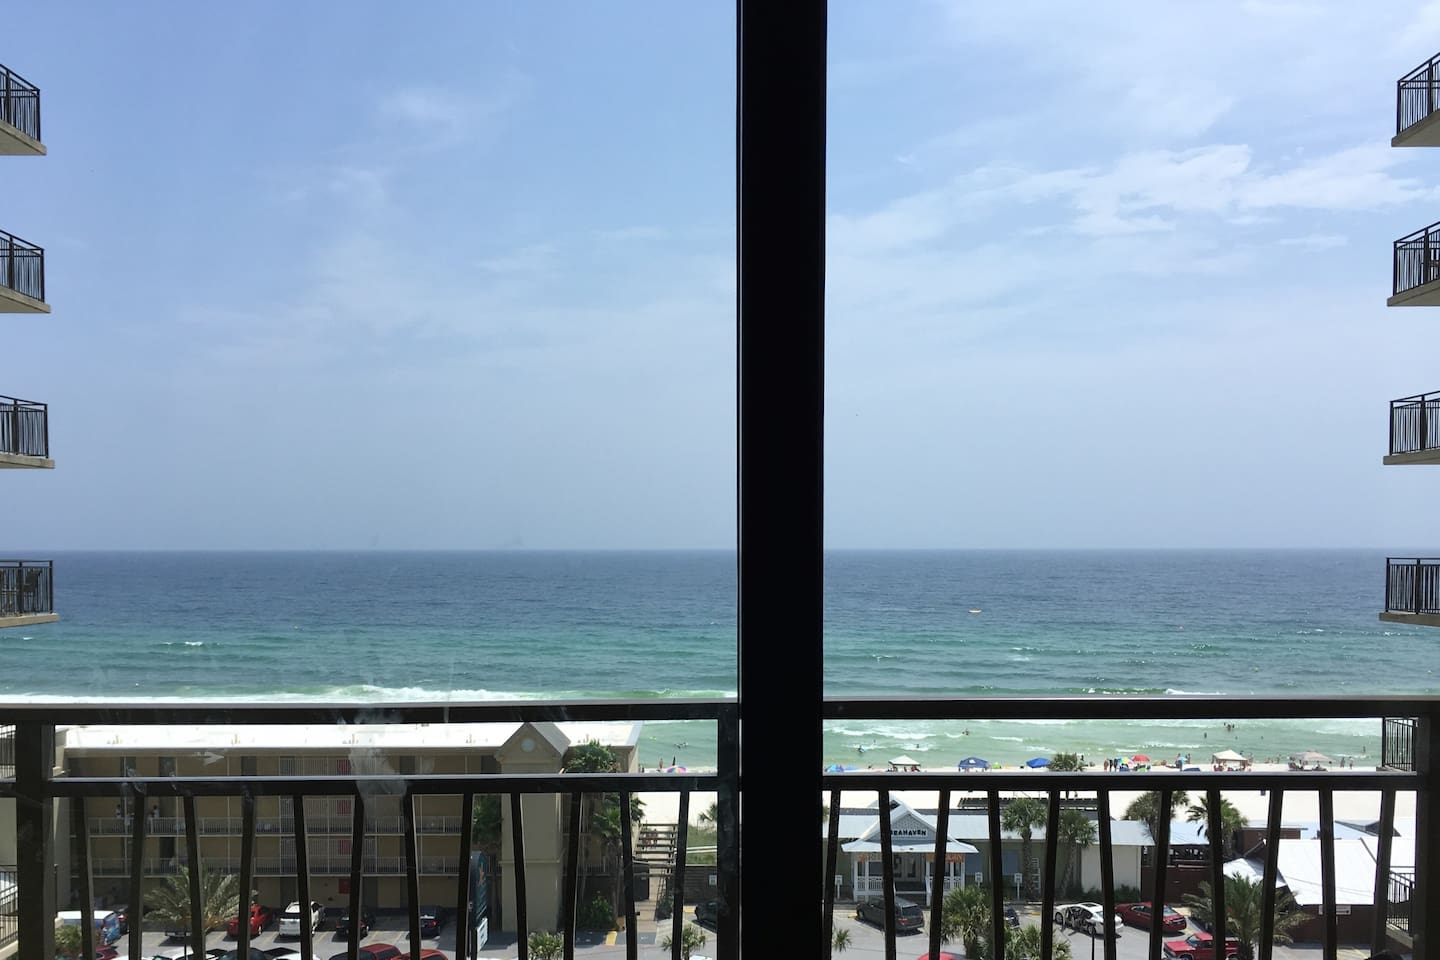 Have coffee on the balcony with this killer view of the water!